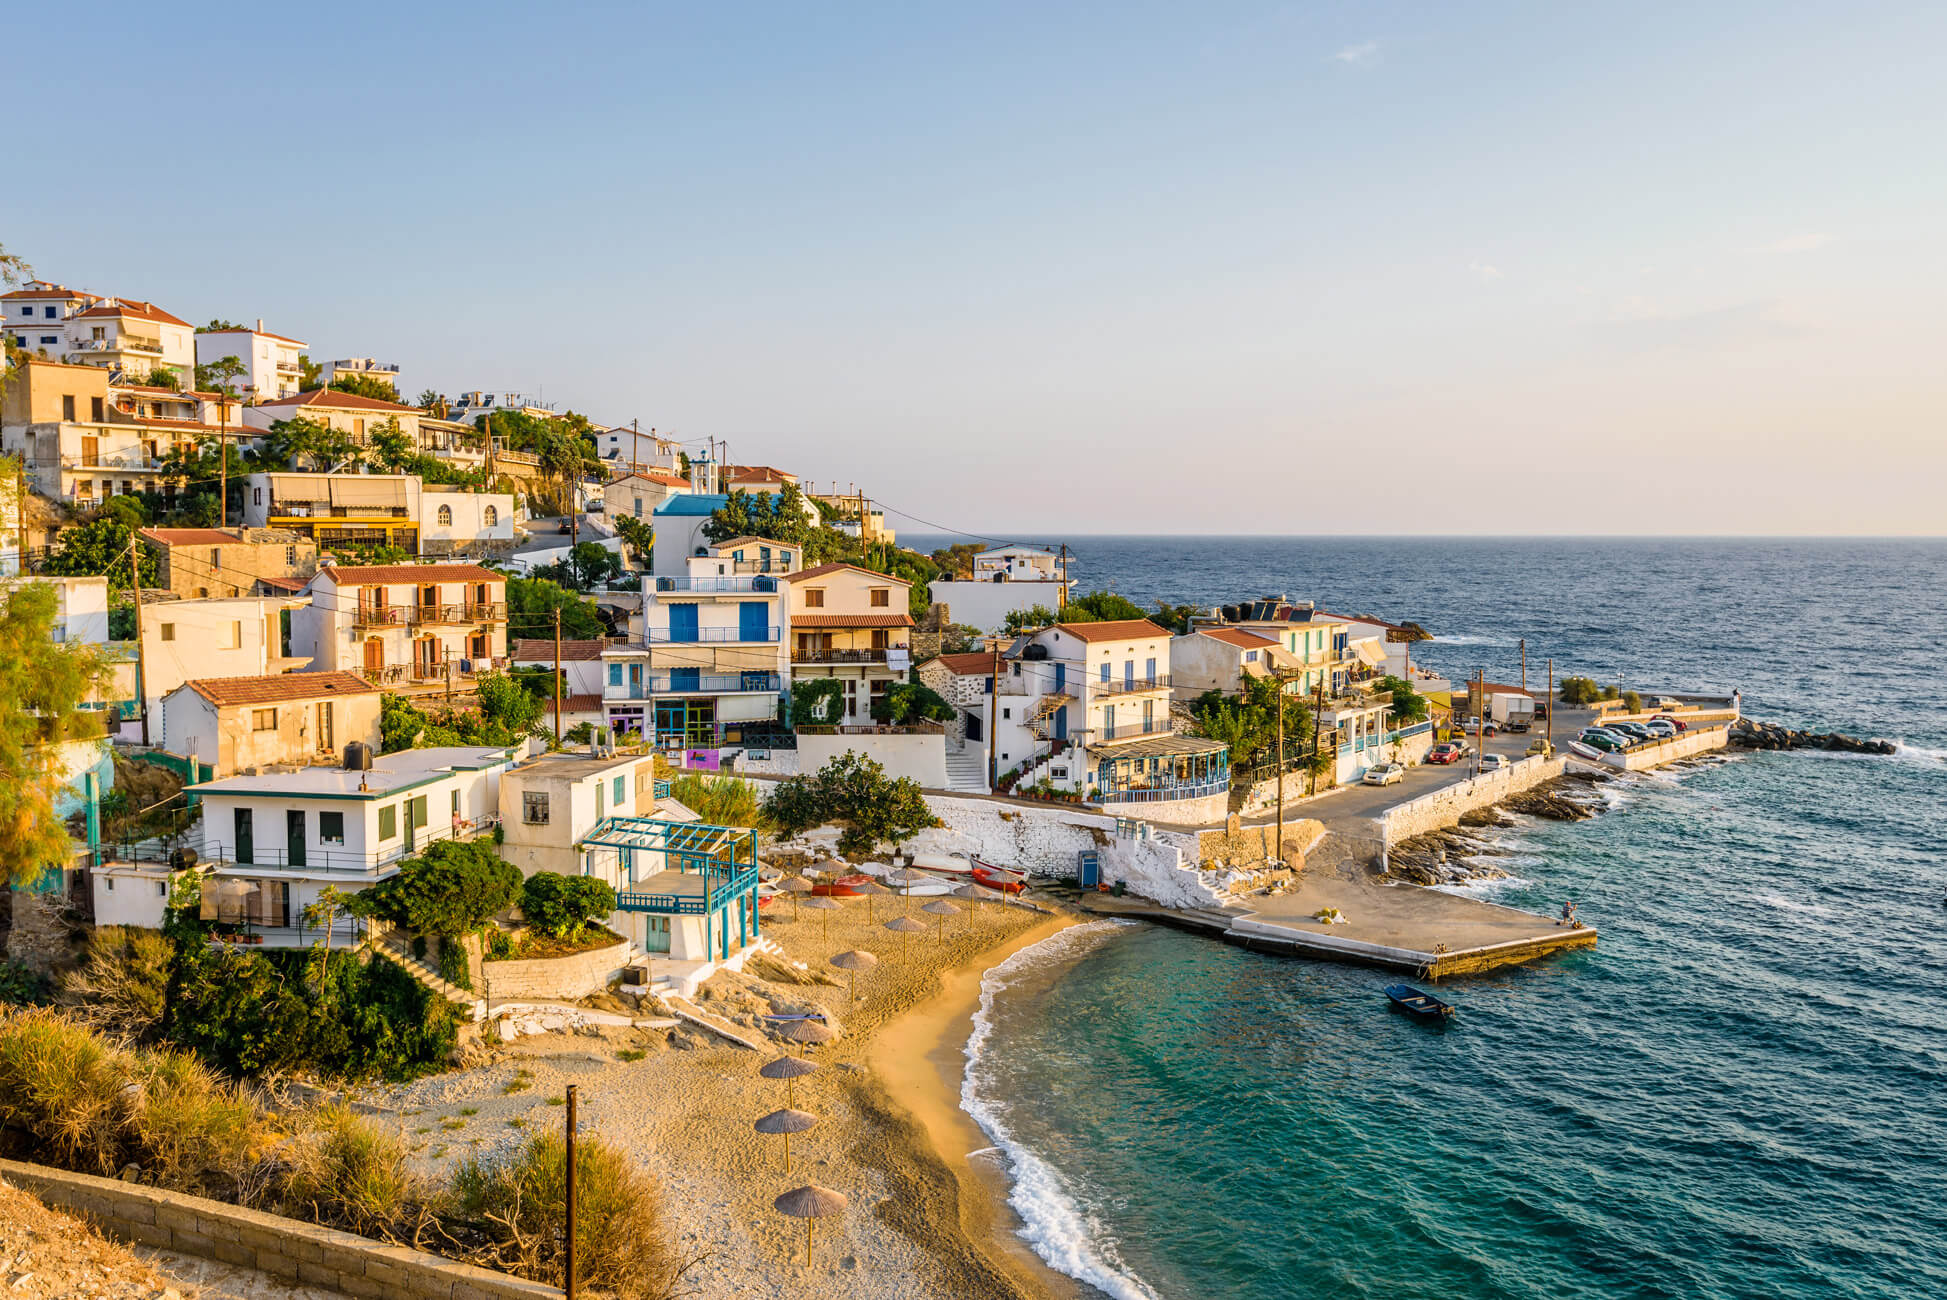 Ikaria, located in Northeastern Aegean, is not only famous for its natural beauty, for also for its layback atmosphere and its high quality of life. Source: Shutterstock